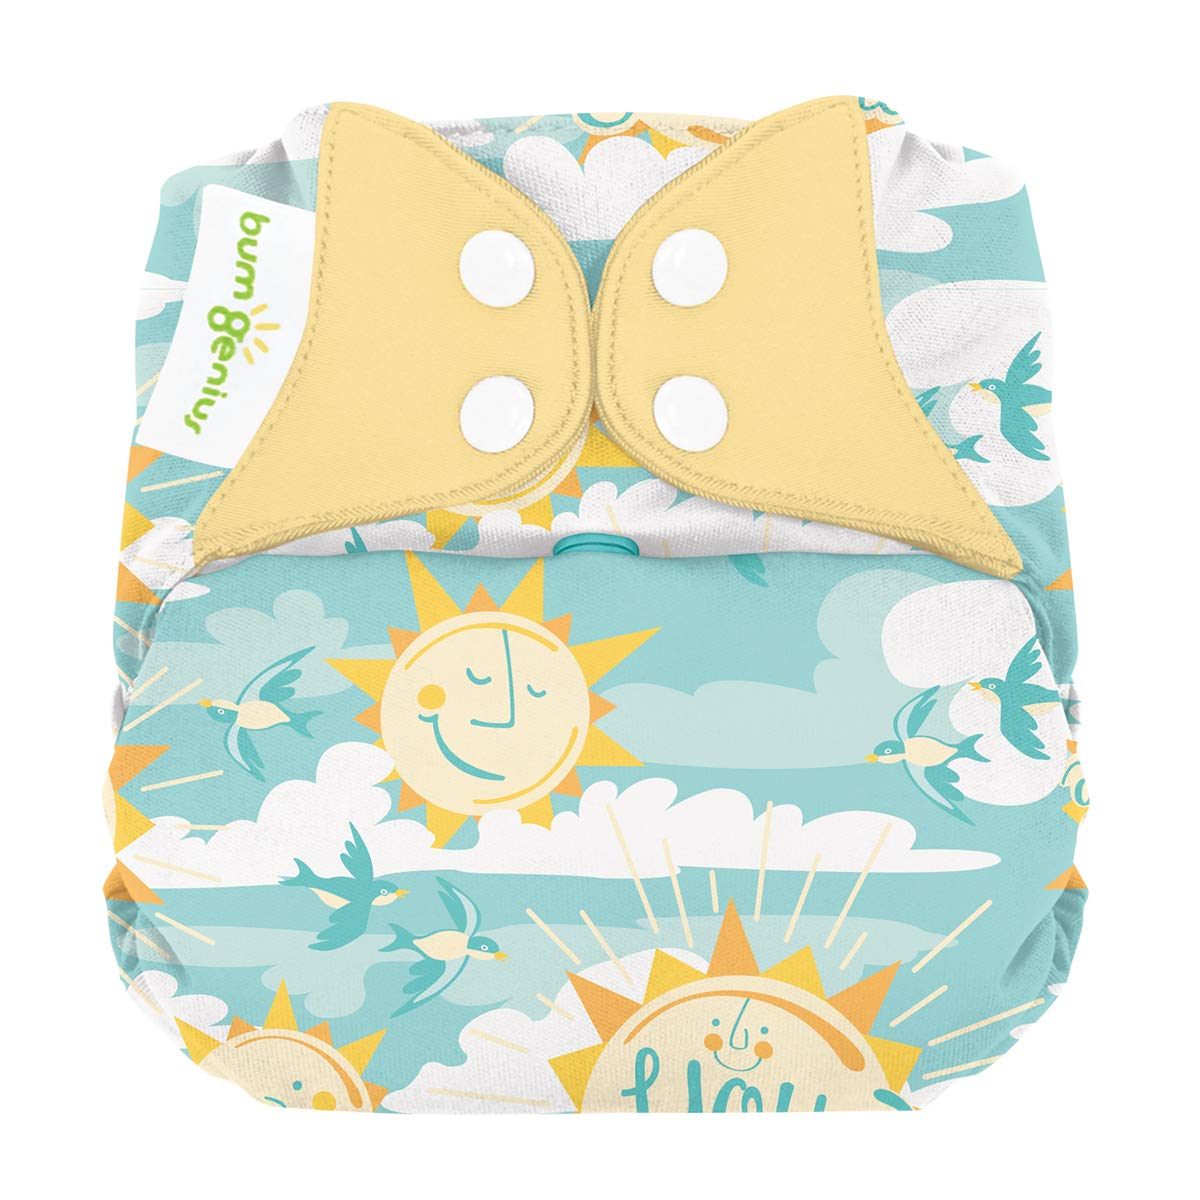 Elemental 3.0 All-in-One One-Size Cloth Diaper with Organic Cotton (My Sun)